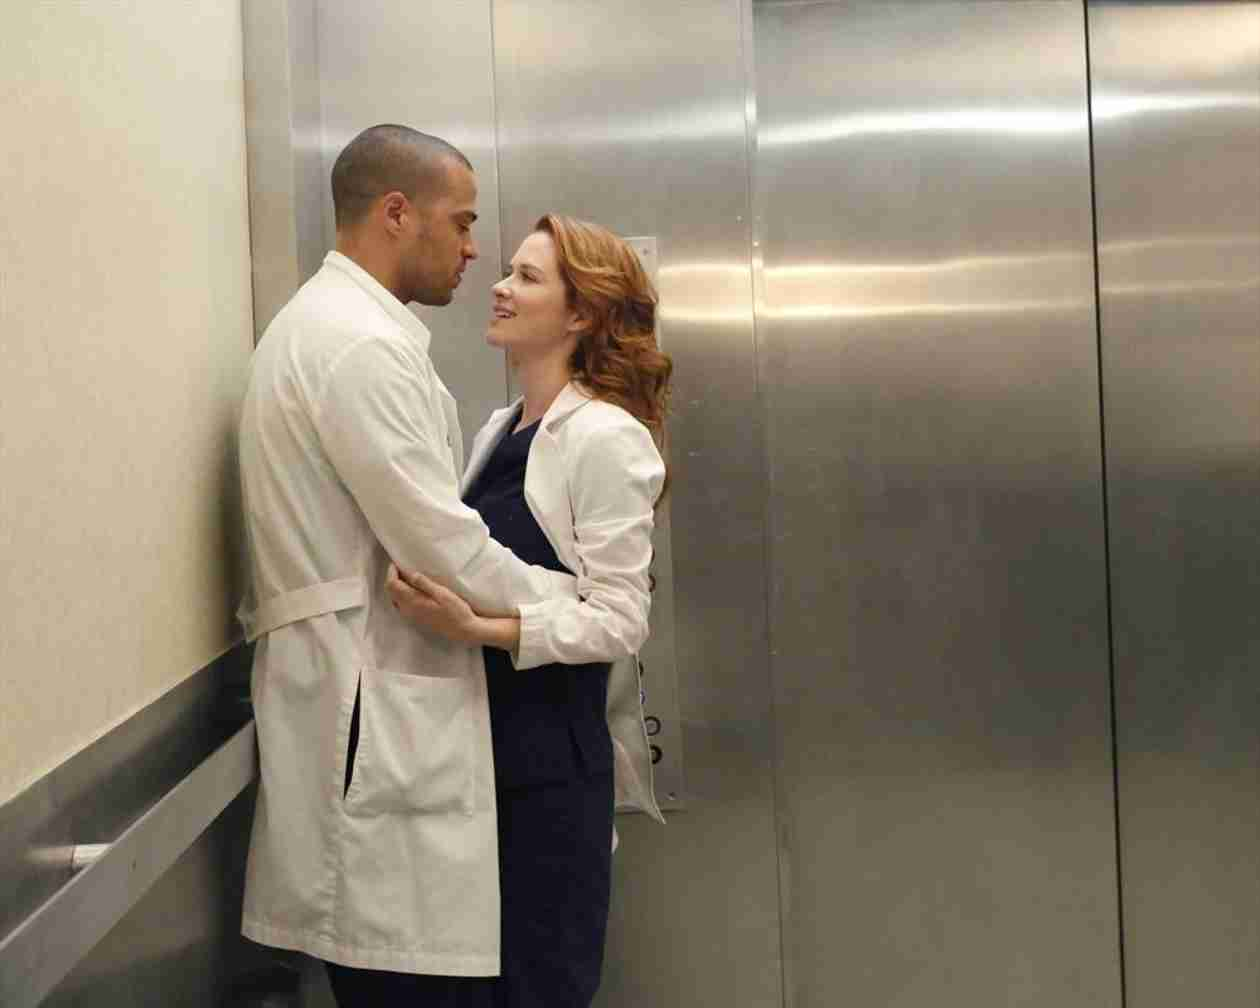 Grey's Anatomy Season 10, Episode 20 Spoilers: 4 Things We Learn From the Sneak Peeks